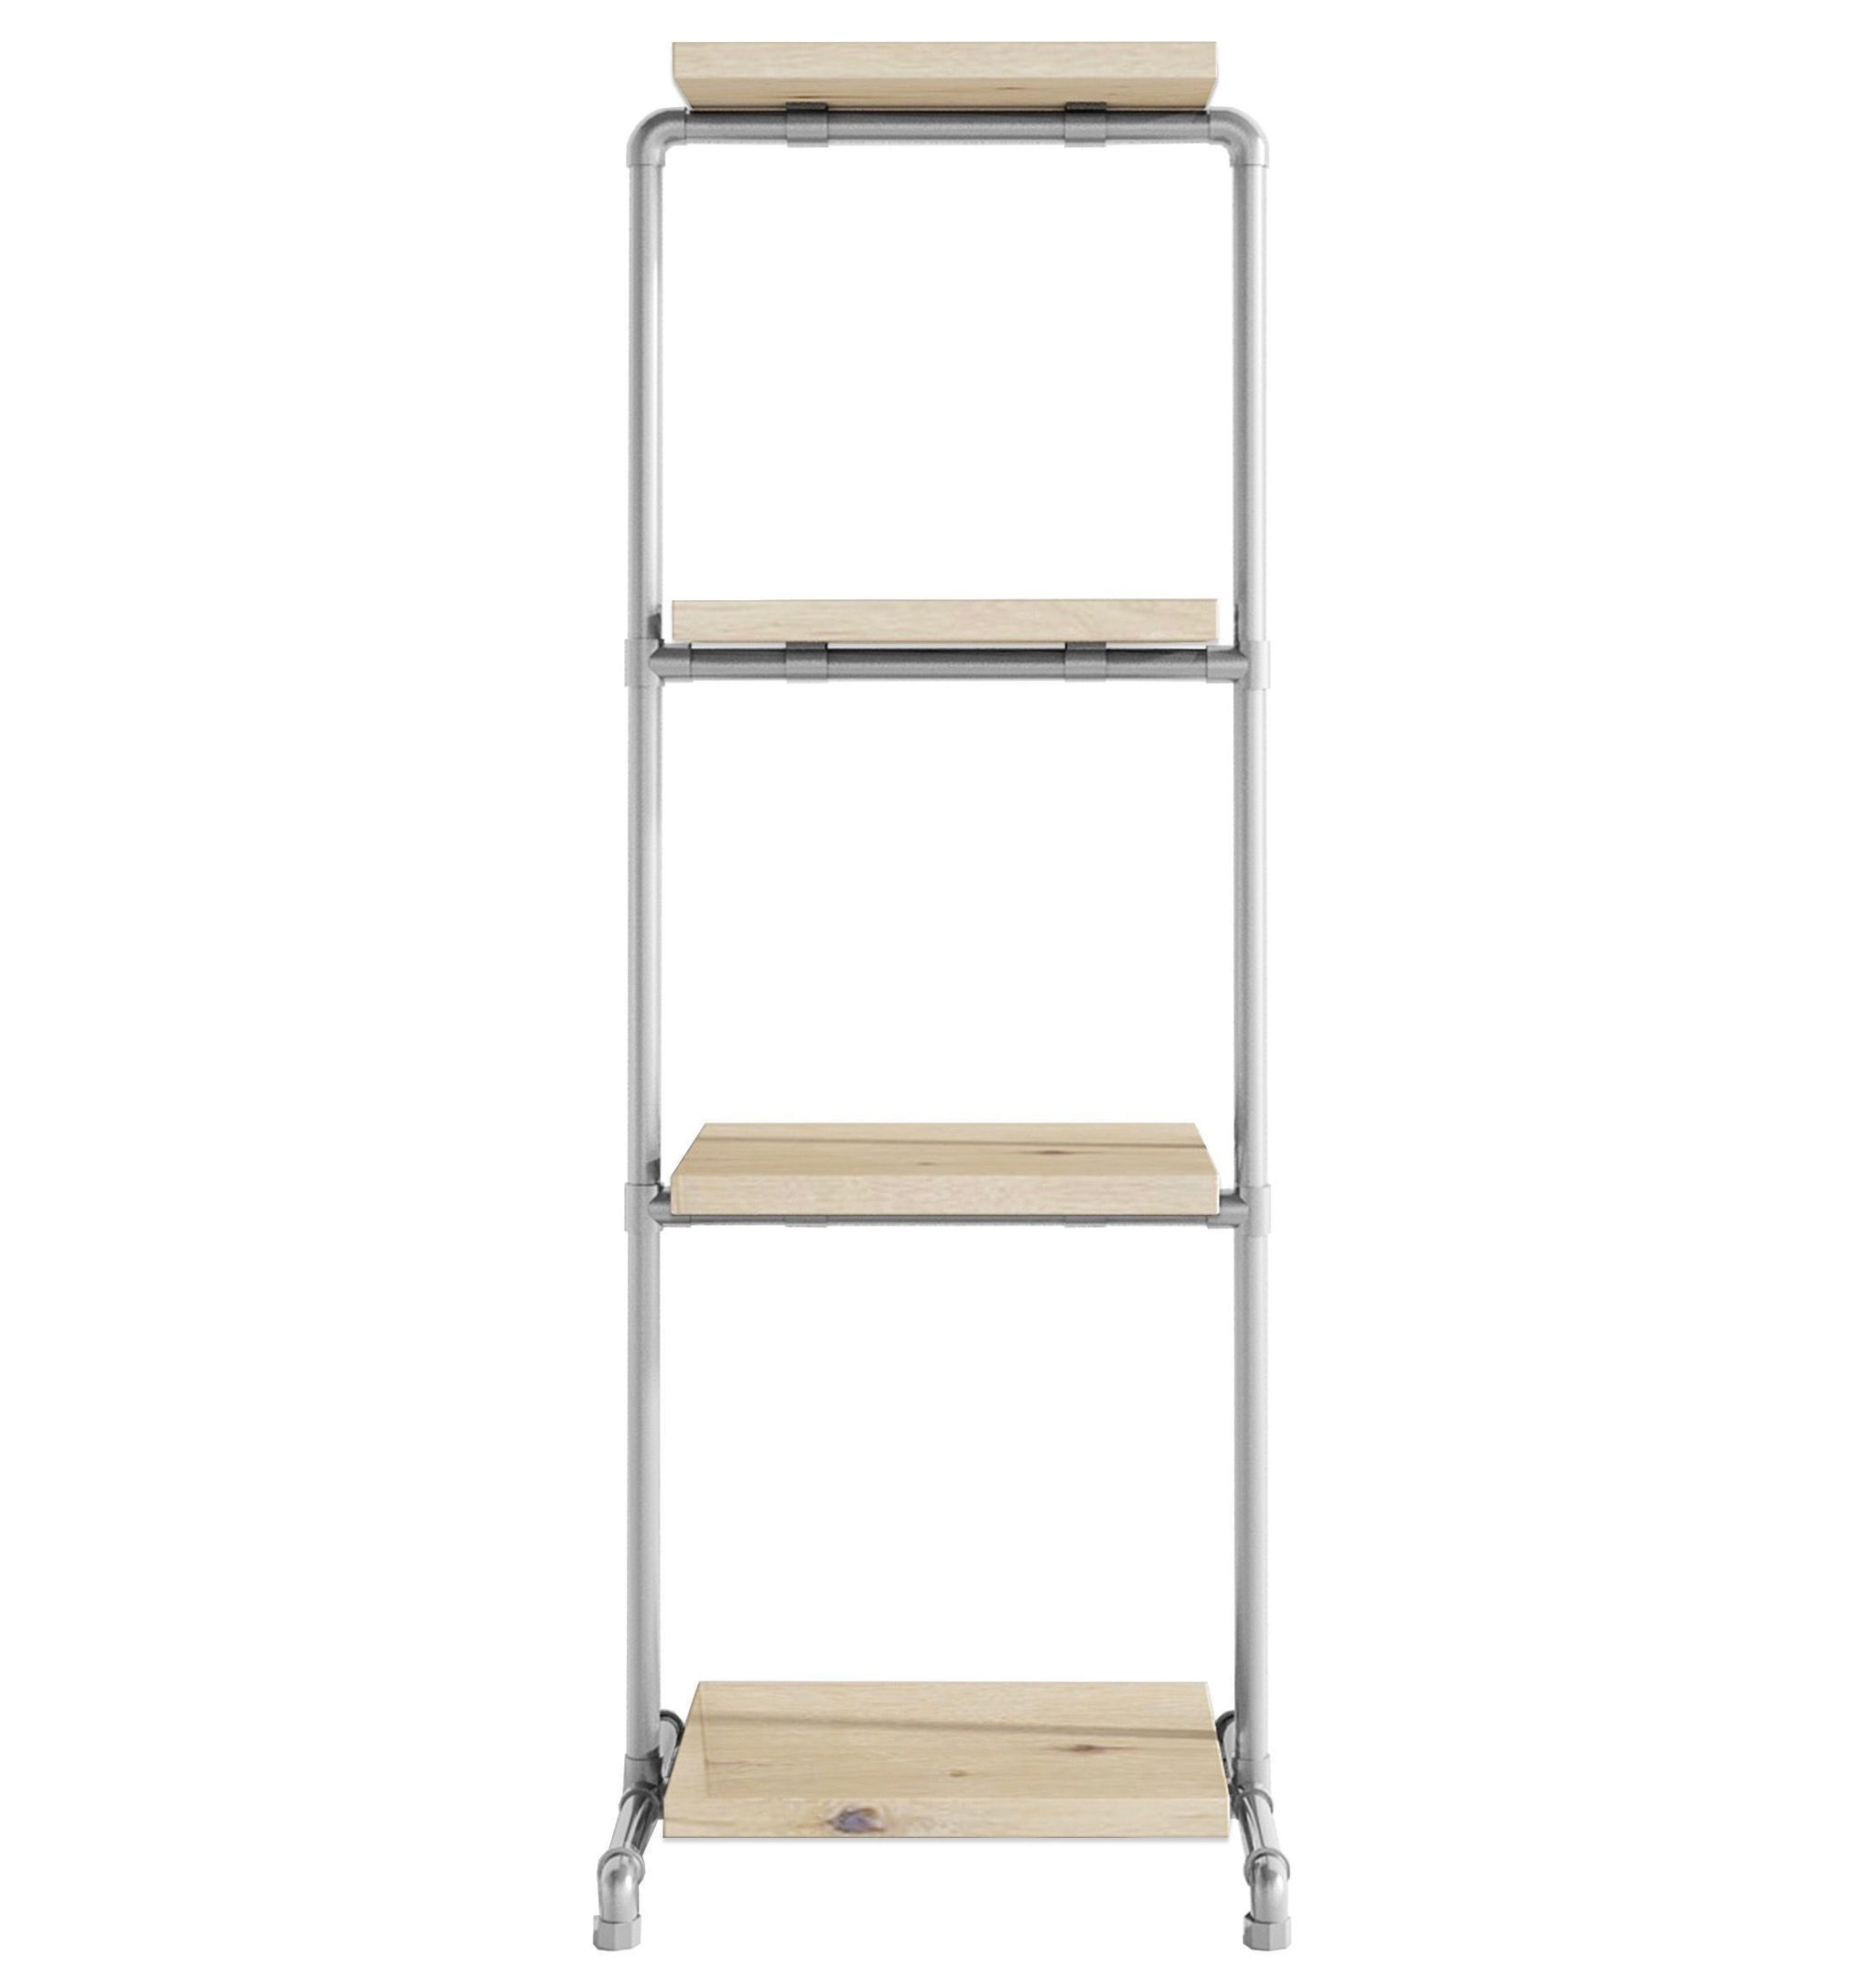 Ziito Shelving Shelf - Reol